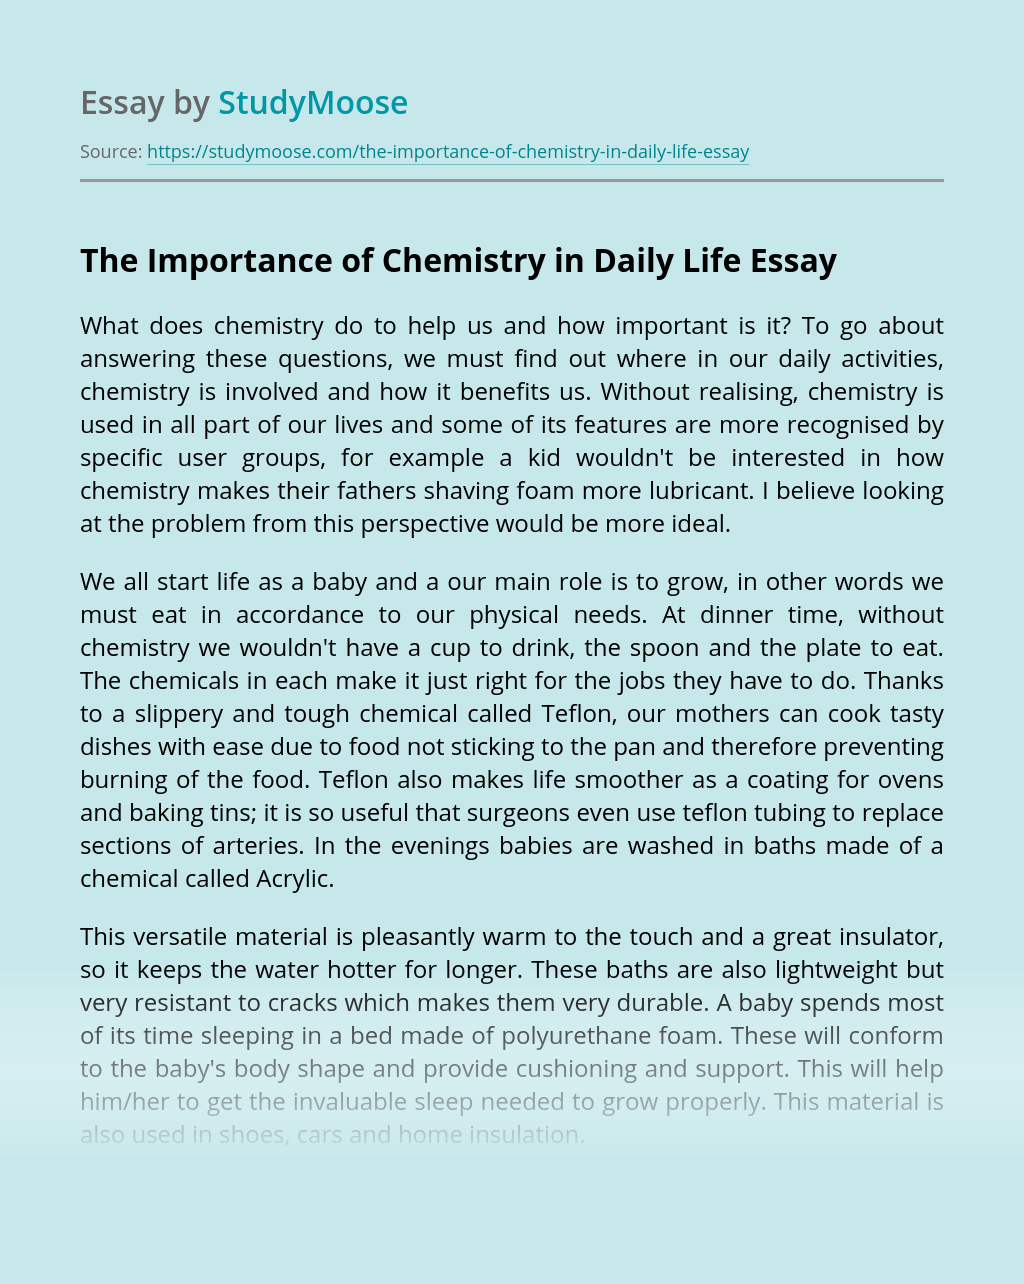 The Importance of Chemistry in Daily Life